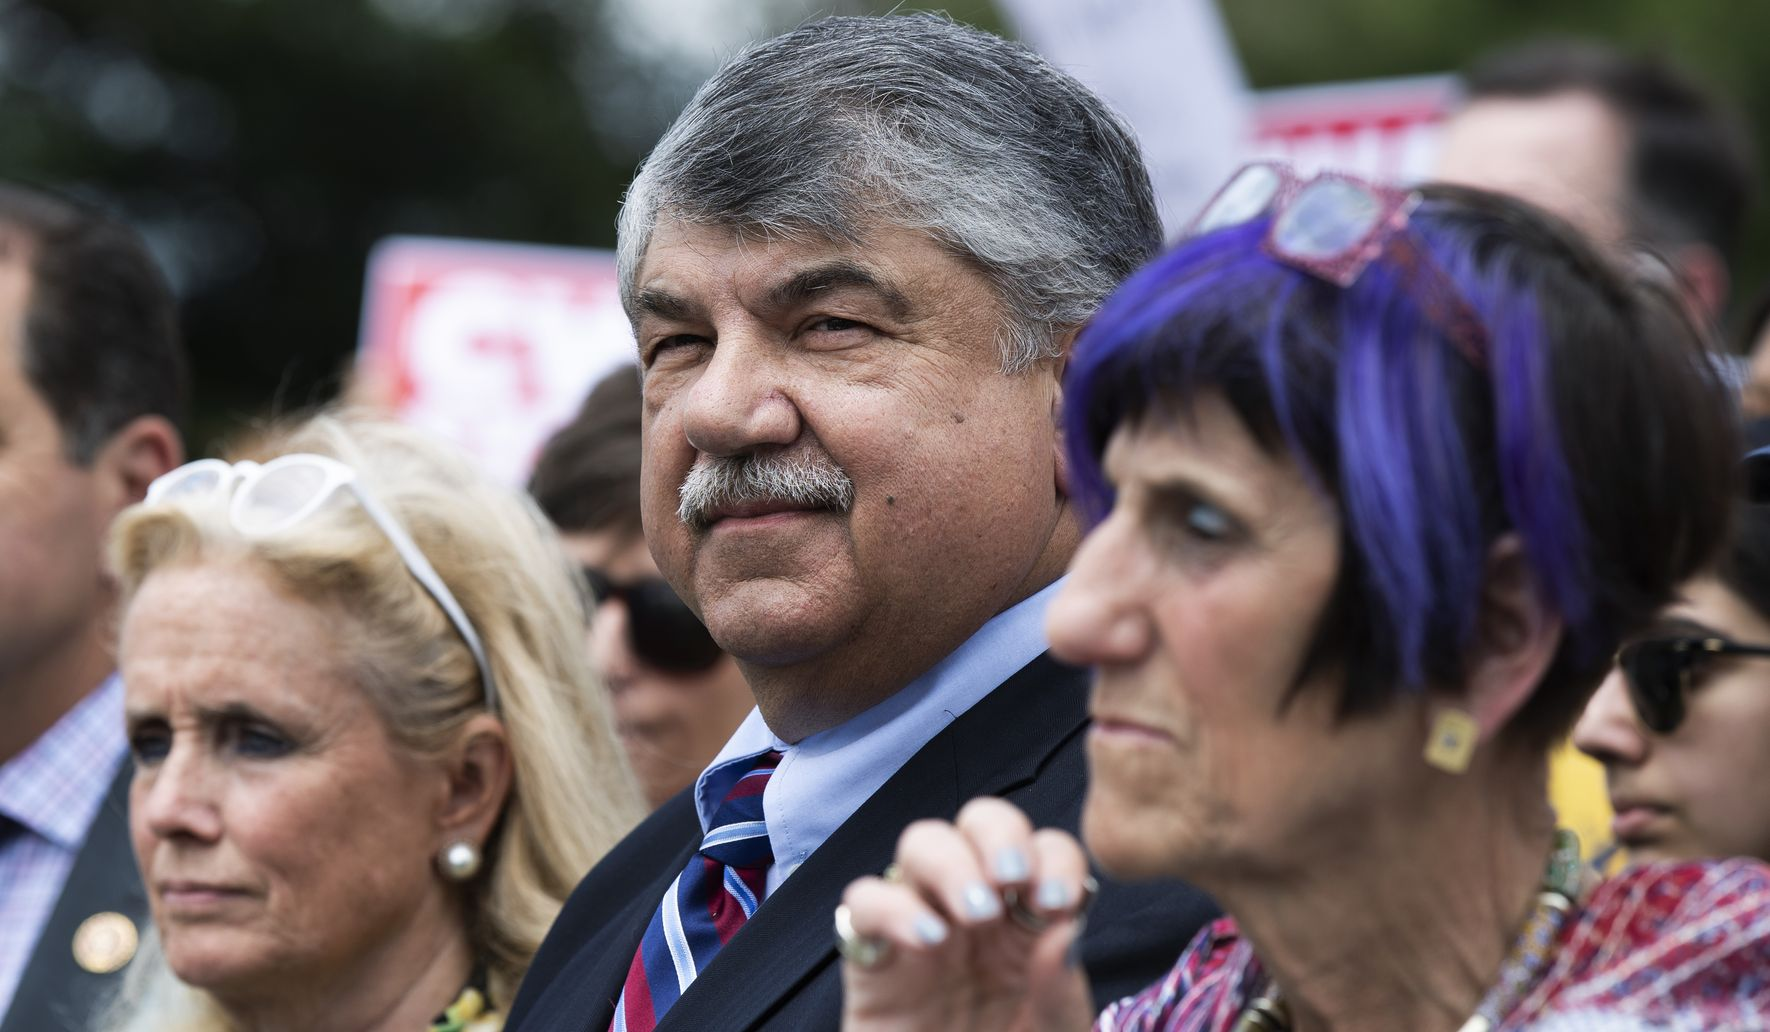 Revved-up outreach: AFL-CIO union president vows to beat back Trump's gains with workers